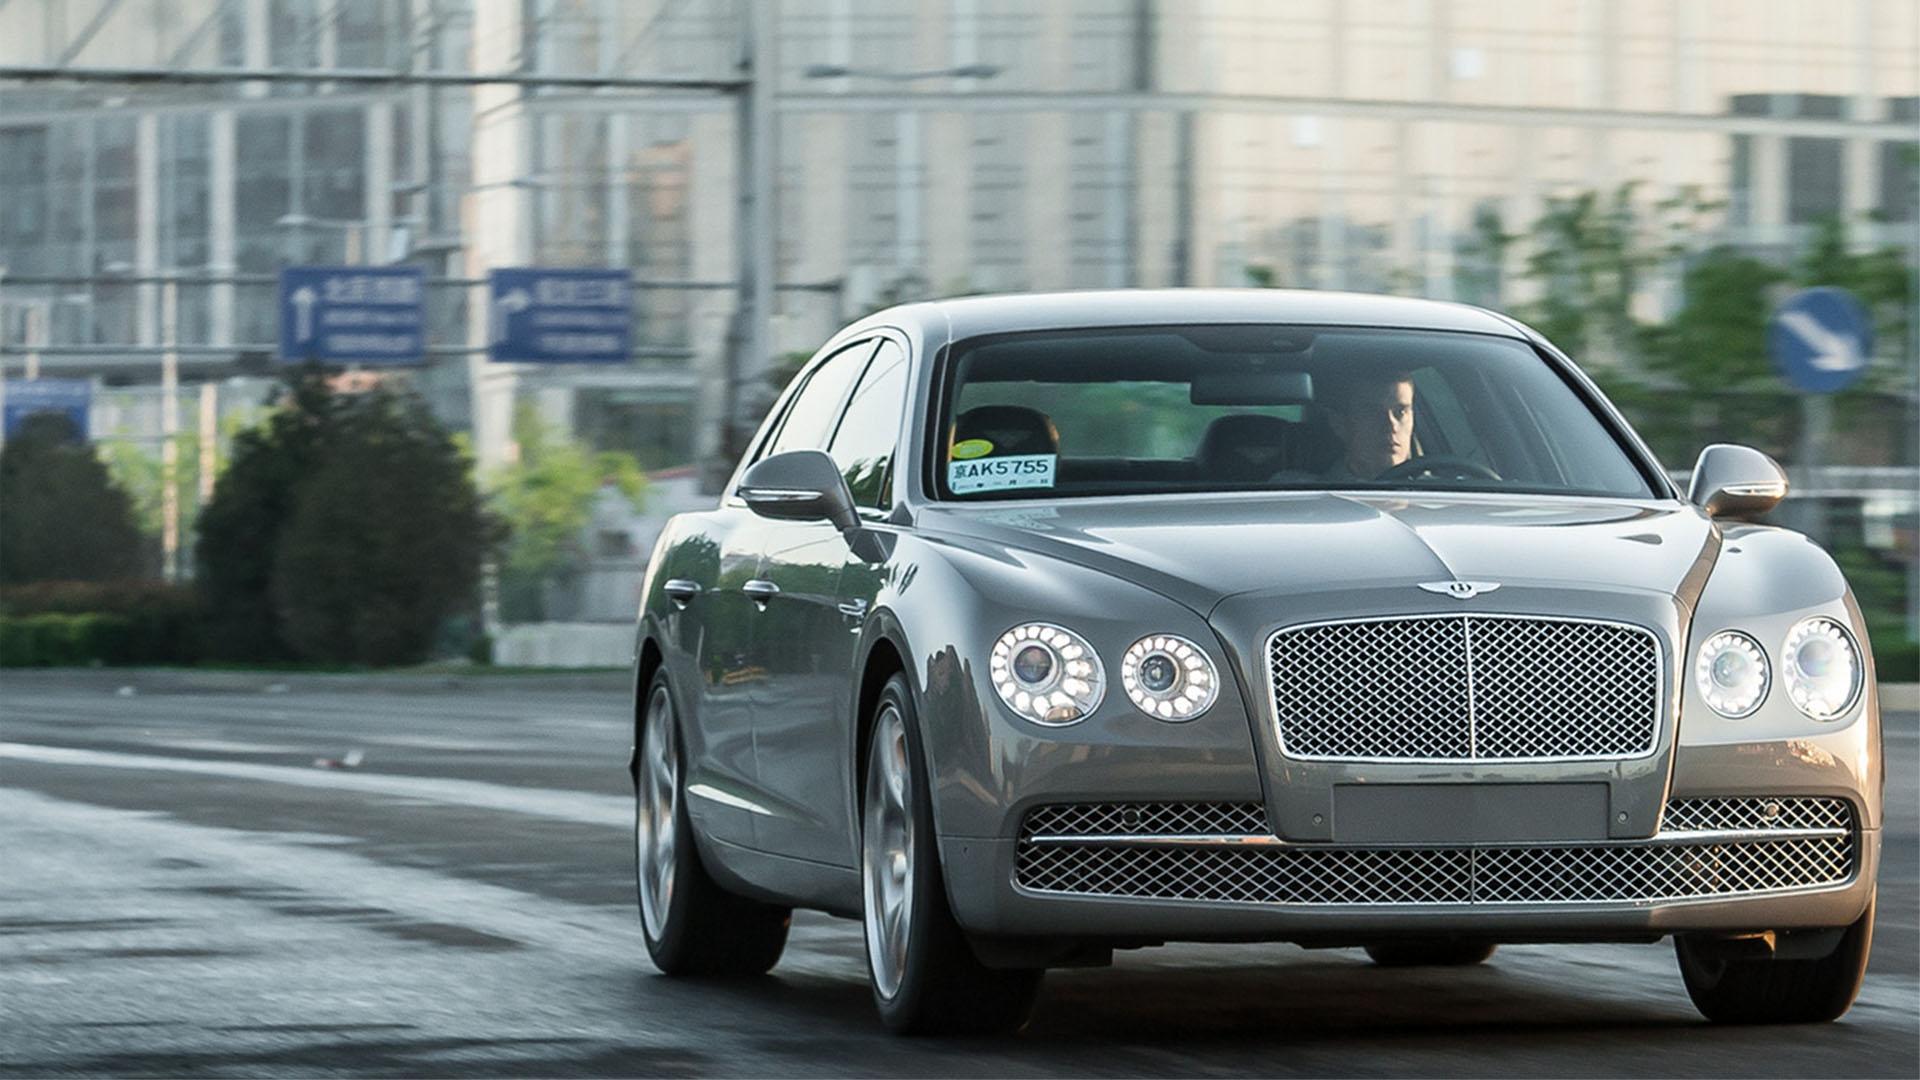 bentley flying spur chauffeur